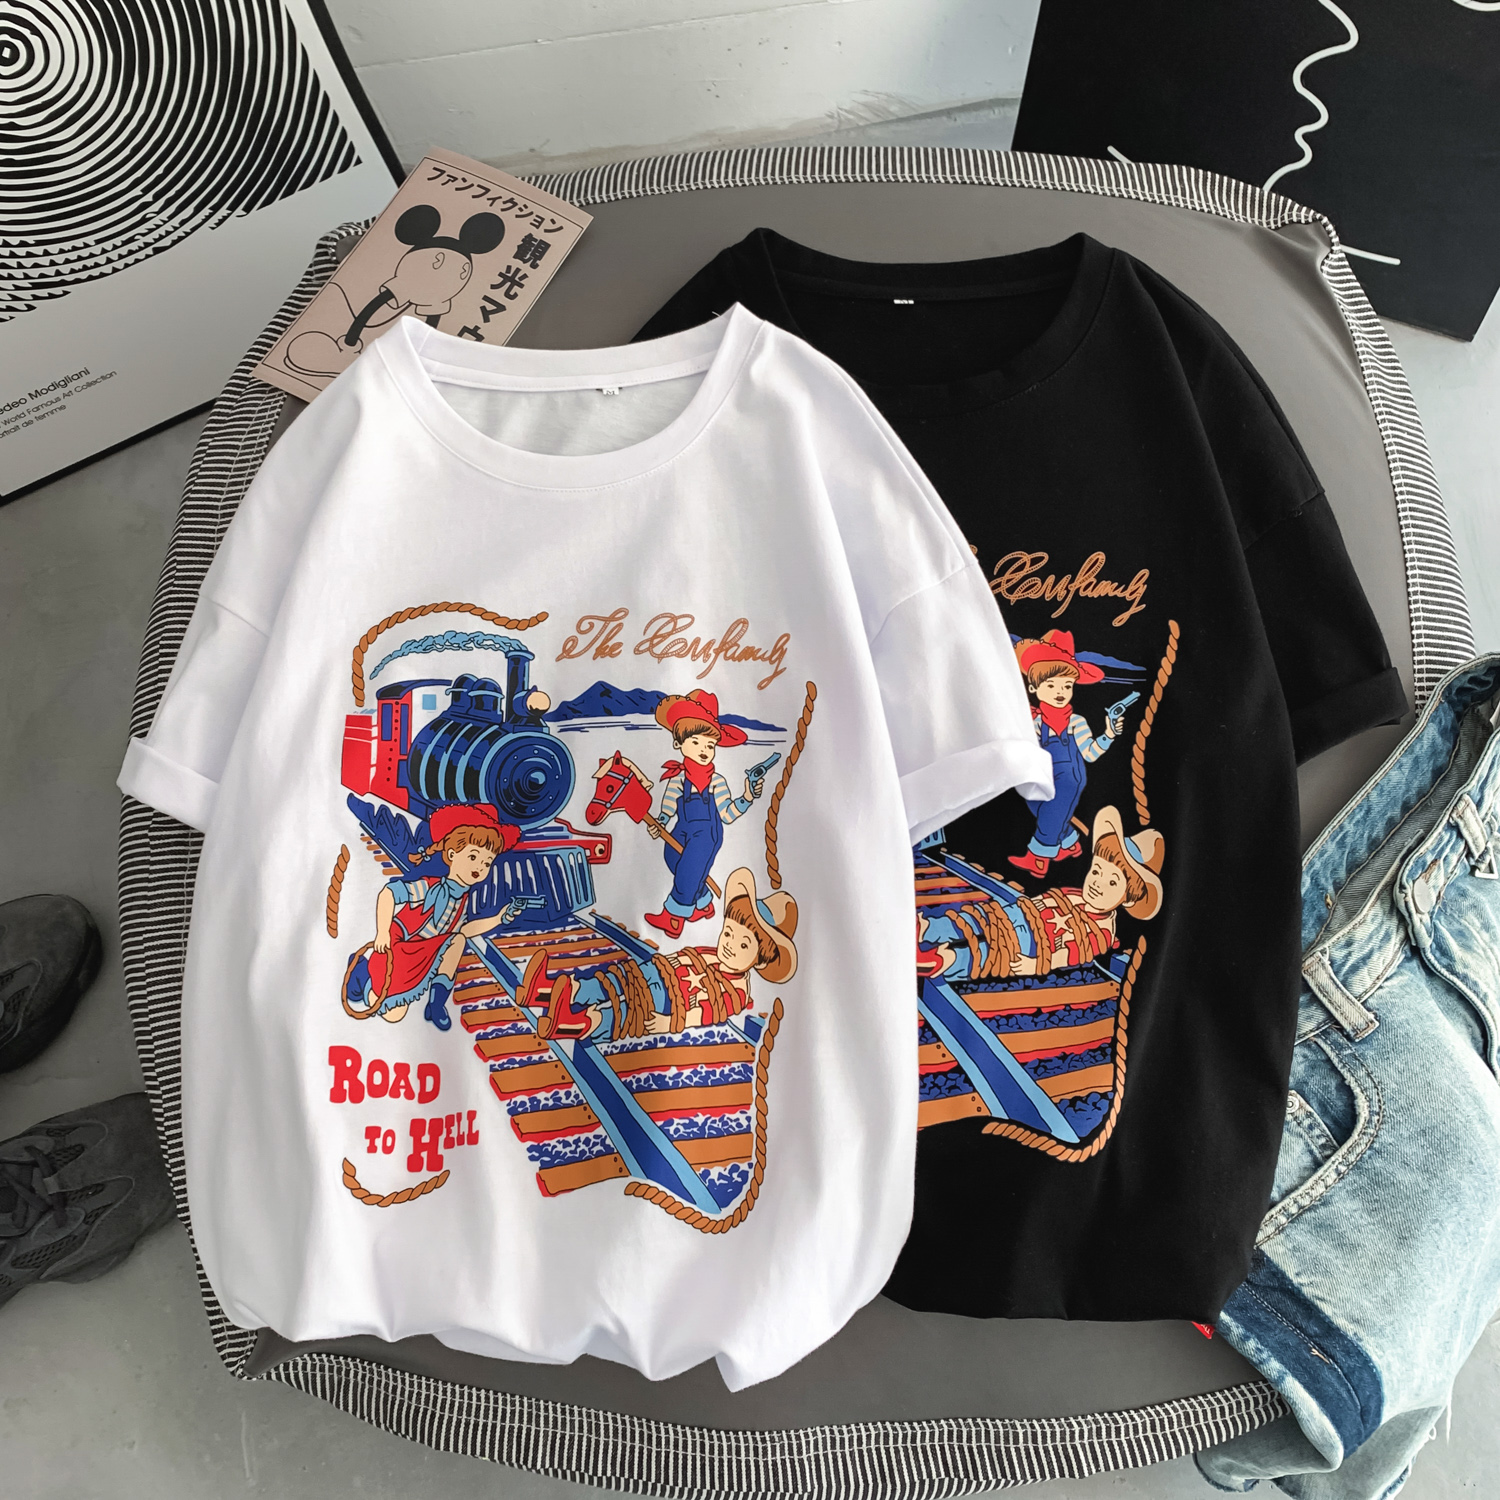 Men's Short-sleeved <font><b>TShirt</b></font> 2020 Summer New <font><b>Hong</b></font> <font><b>Kong</b></font> Style Cotton Short-sleeved Shirt Male Loose Couple Printed T-shirt image